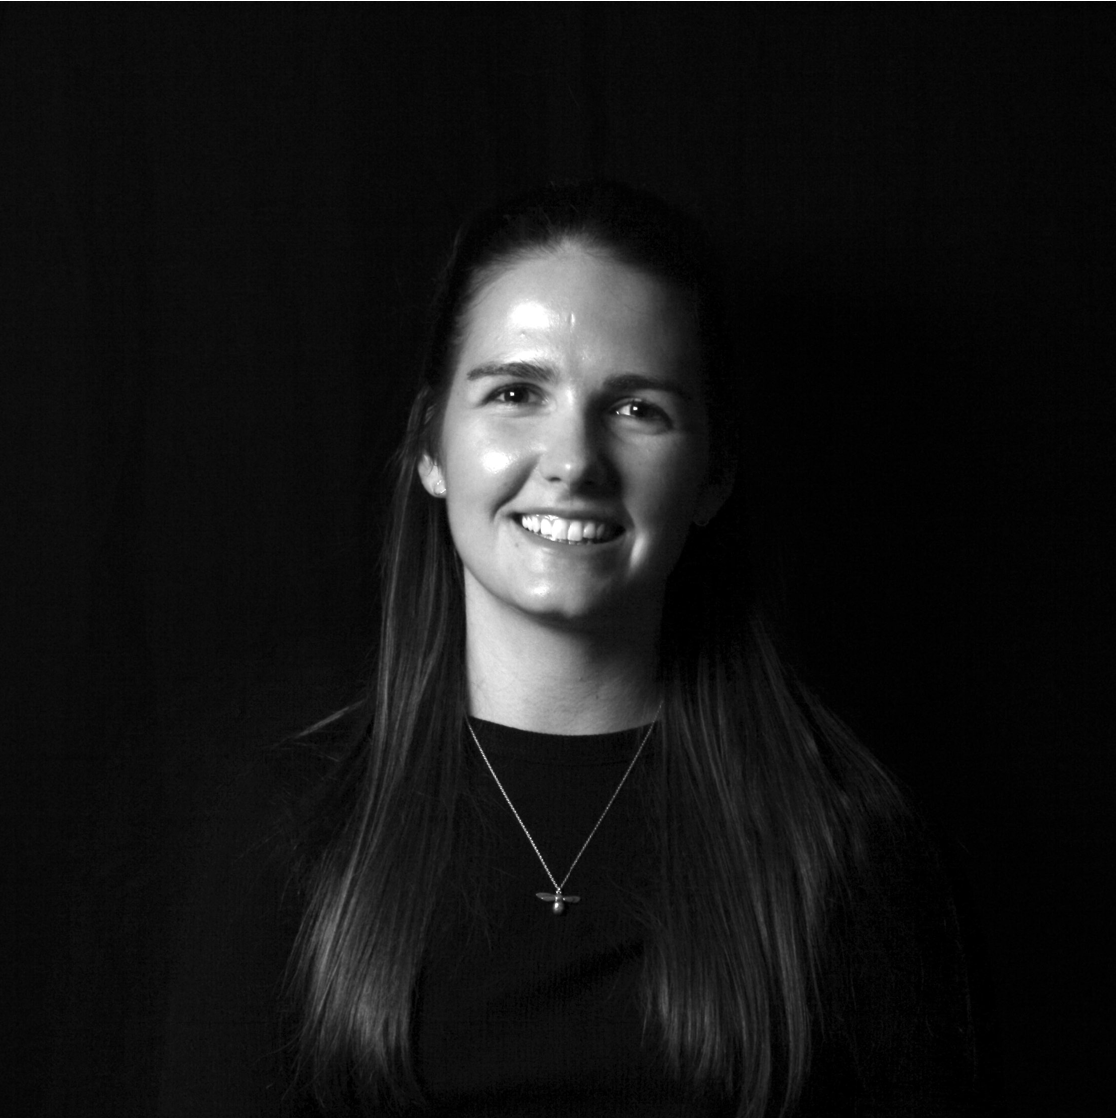 - Taylor DangerfieldAssistant ProducerTaylor joined us from the UK at the beginning of the year as an Assistant Producer, after working as an event coordinator and assistant wedding planner. She graduated from the University of Exeter in 2017 with a Masters in International Tourism Management.Since joining us she has worked closely with our Senior Producers to develop a full agency approach to some of our newest clients. She fully immerses herself into our client's brands and loves finding the best opportunities for them.